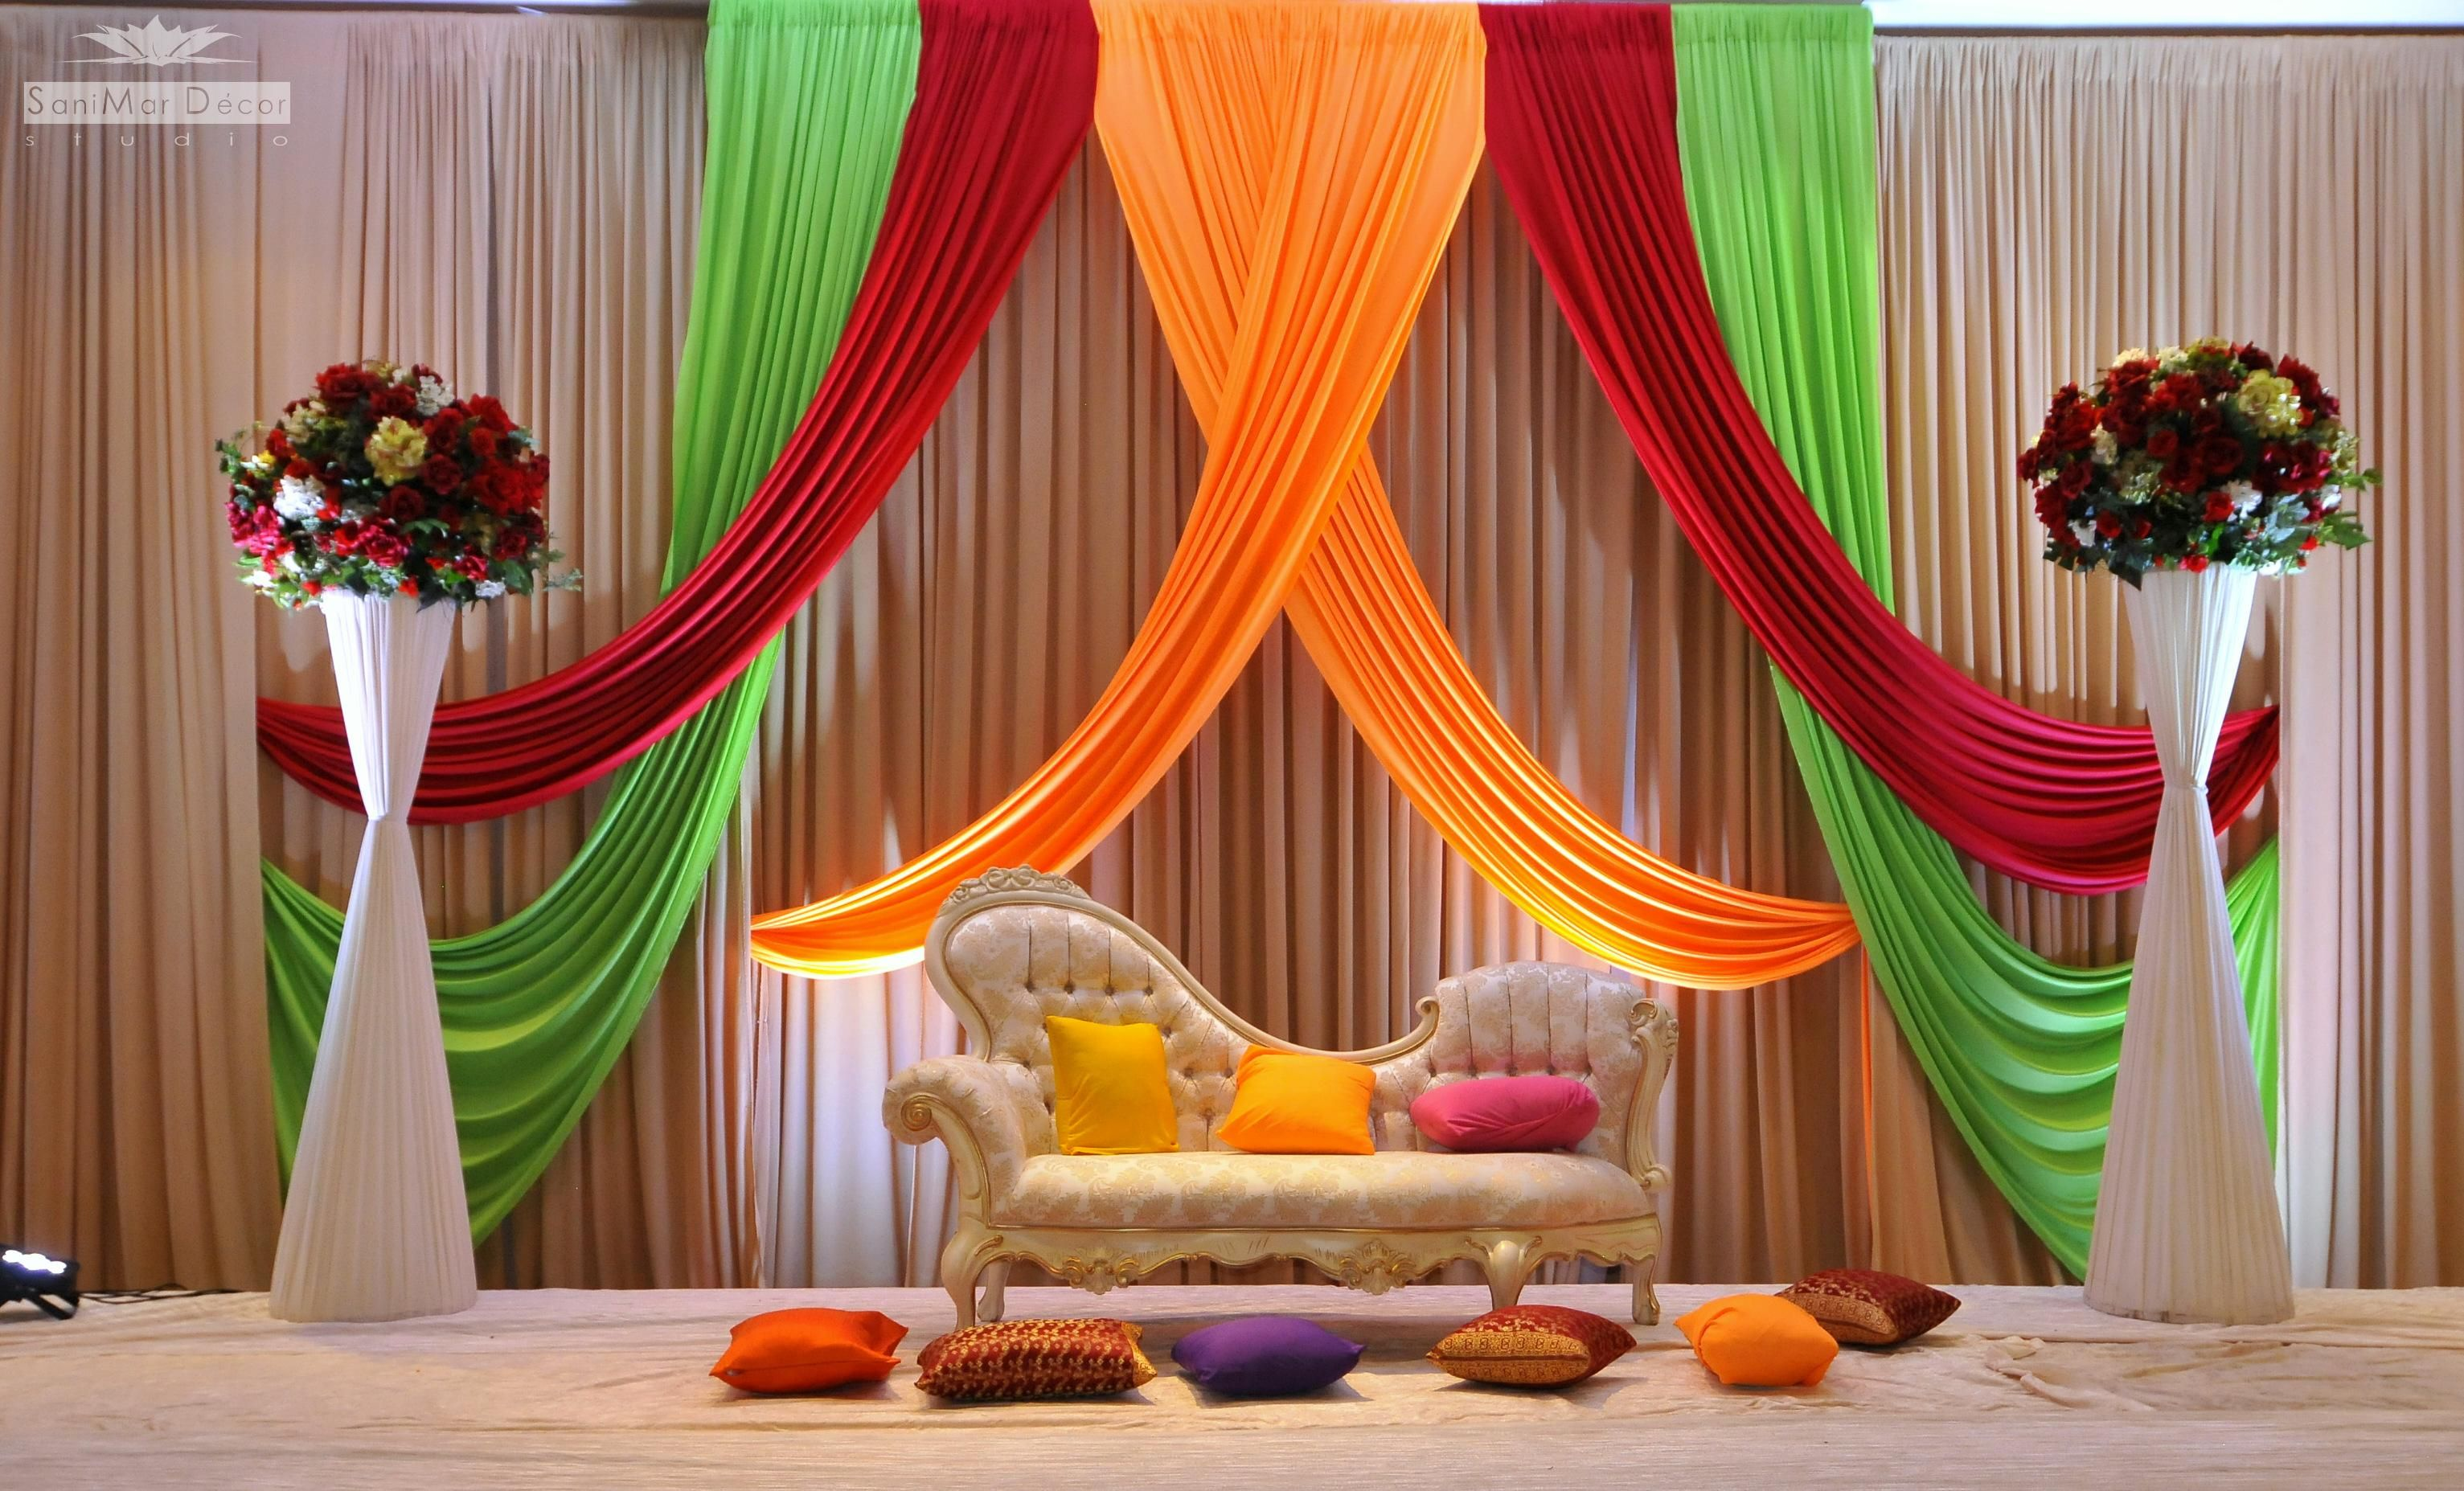 Wedding stage decoration wedding decorations natural for Asian wedding bed decoration ideas